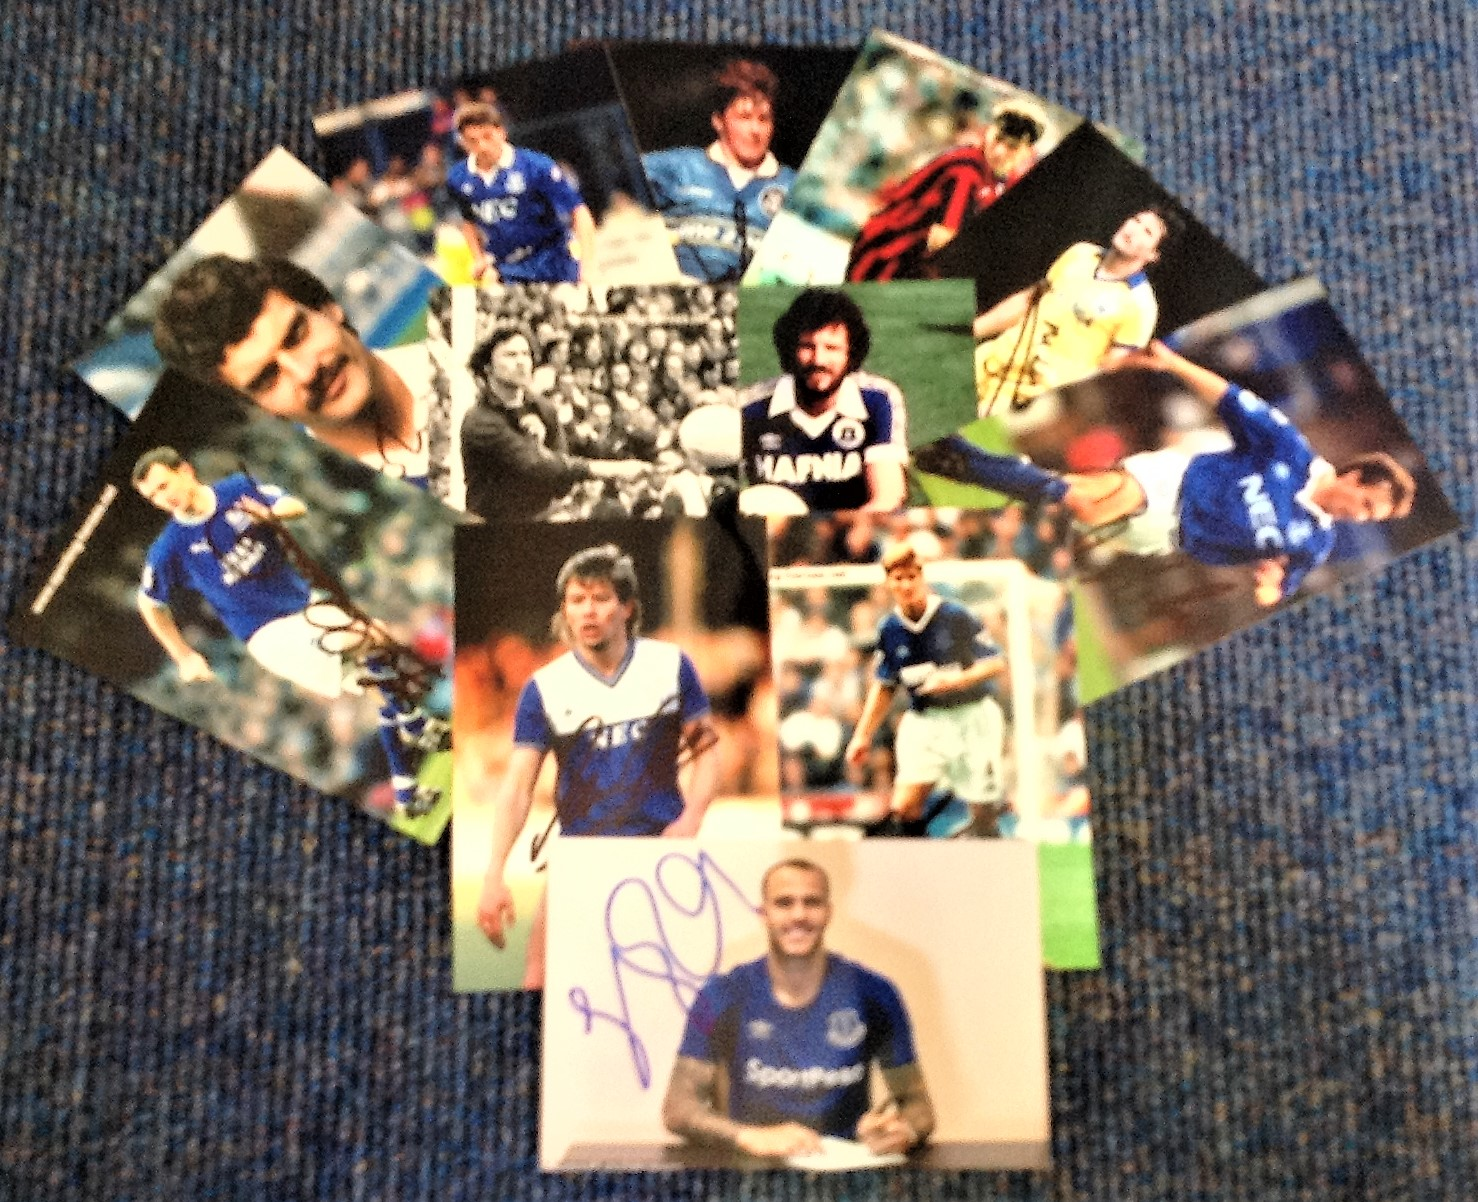 Lot 11 - Everton FC signed 6x4 photo collection. 12 photos. Including Barton, Lawson, Holmes, Heath, Lyons